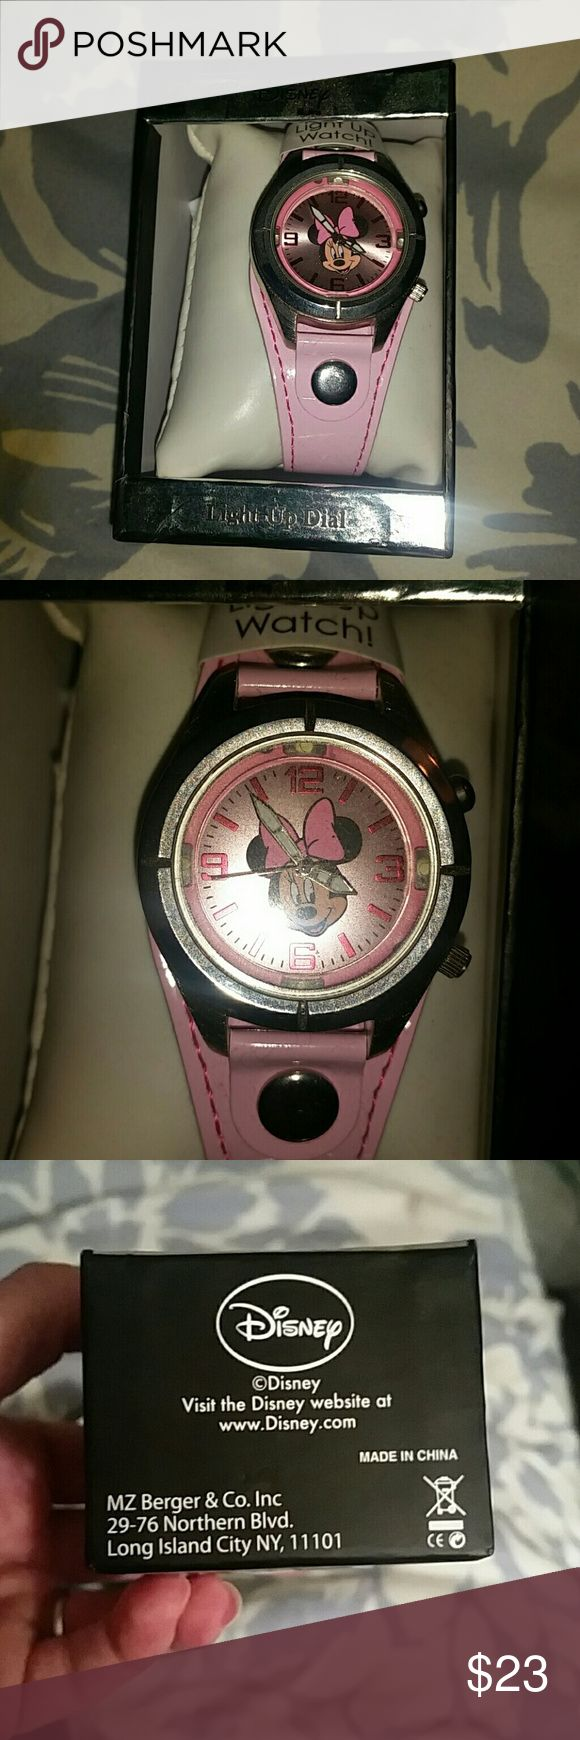 NIB Disney Minnie Mouse light-up watch! This is new, never taken out of box, good battery and lights up! The color is light pink! Disney Accessories Watches